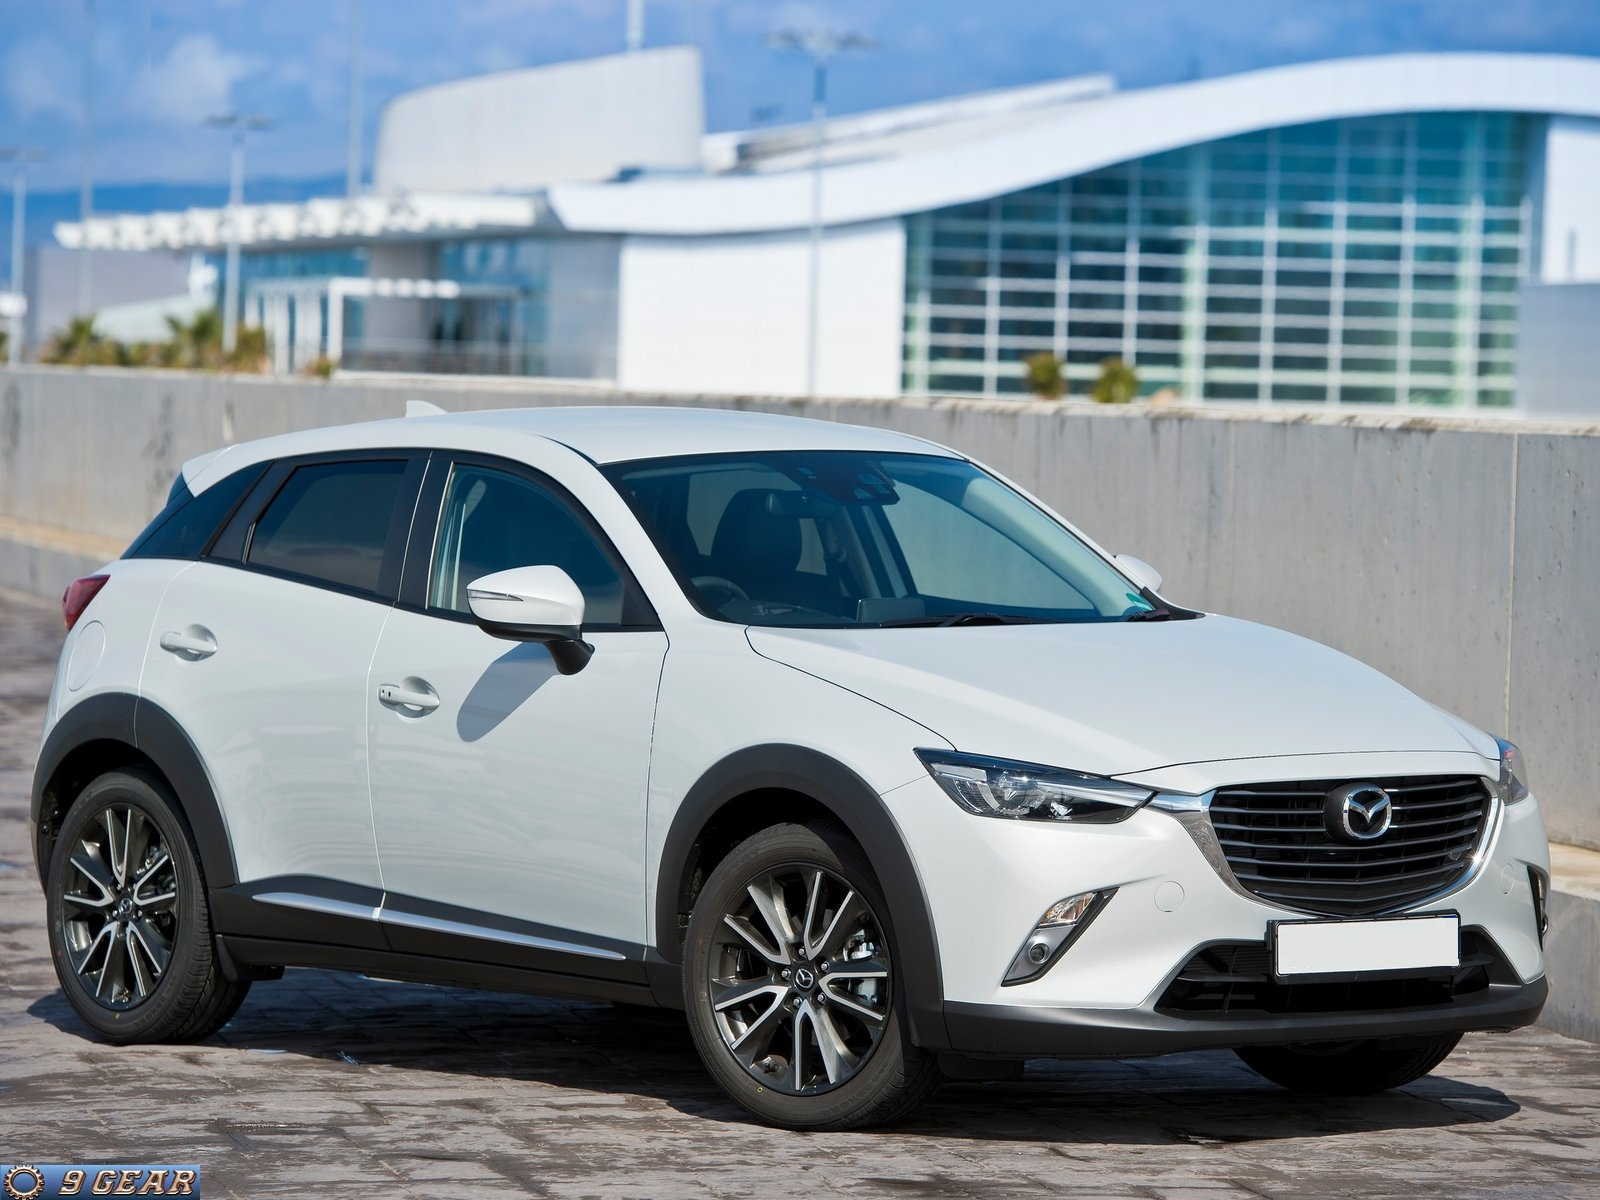 discover the all new mazda cx 3 crossover suv car reviews new car pictures for 2018 2019. Black Bedroom Furniture Sets. Home Design Ideas